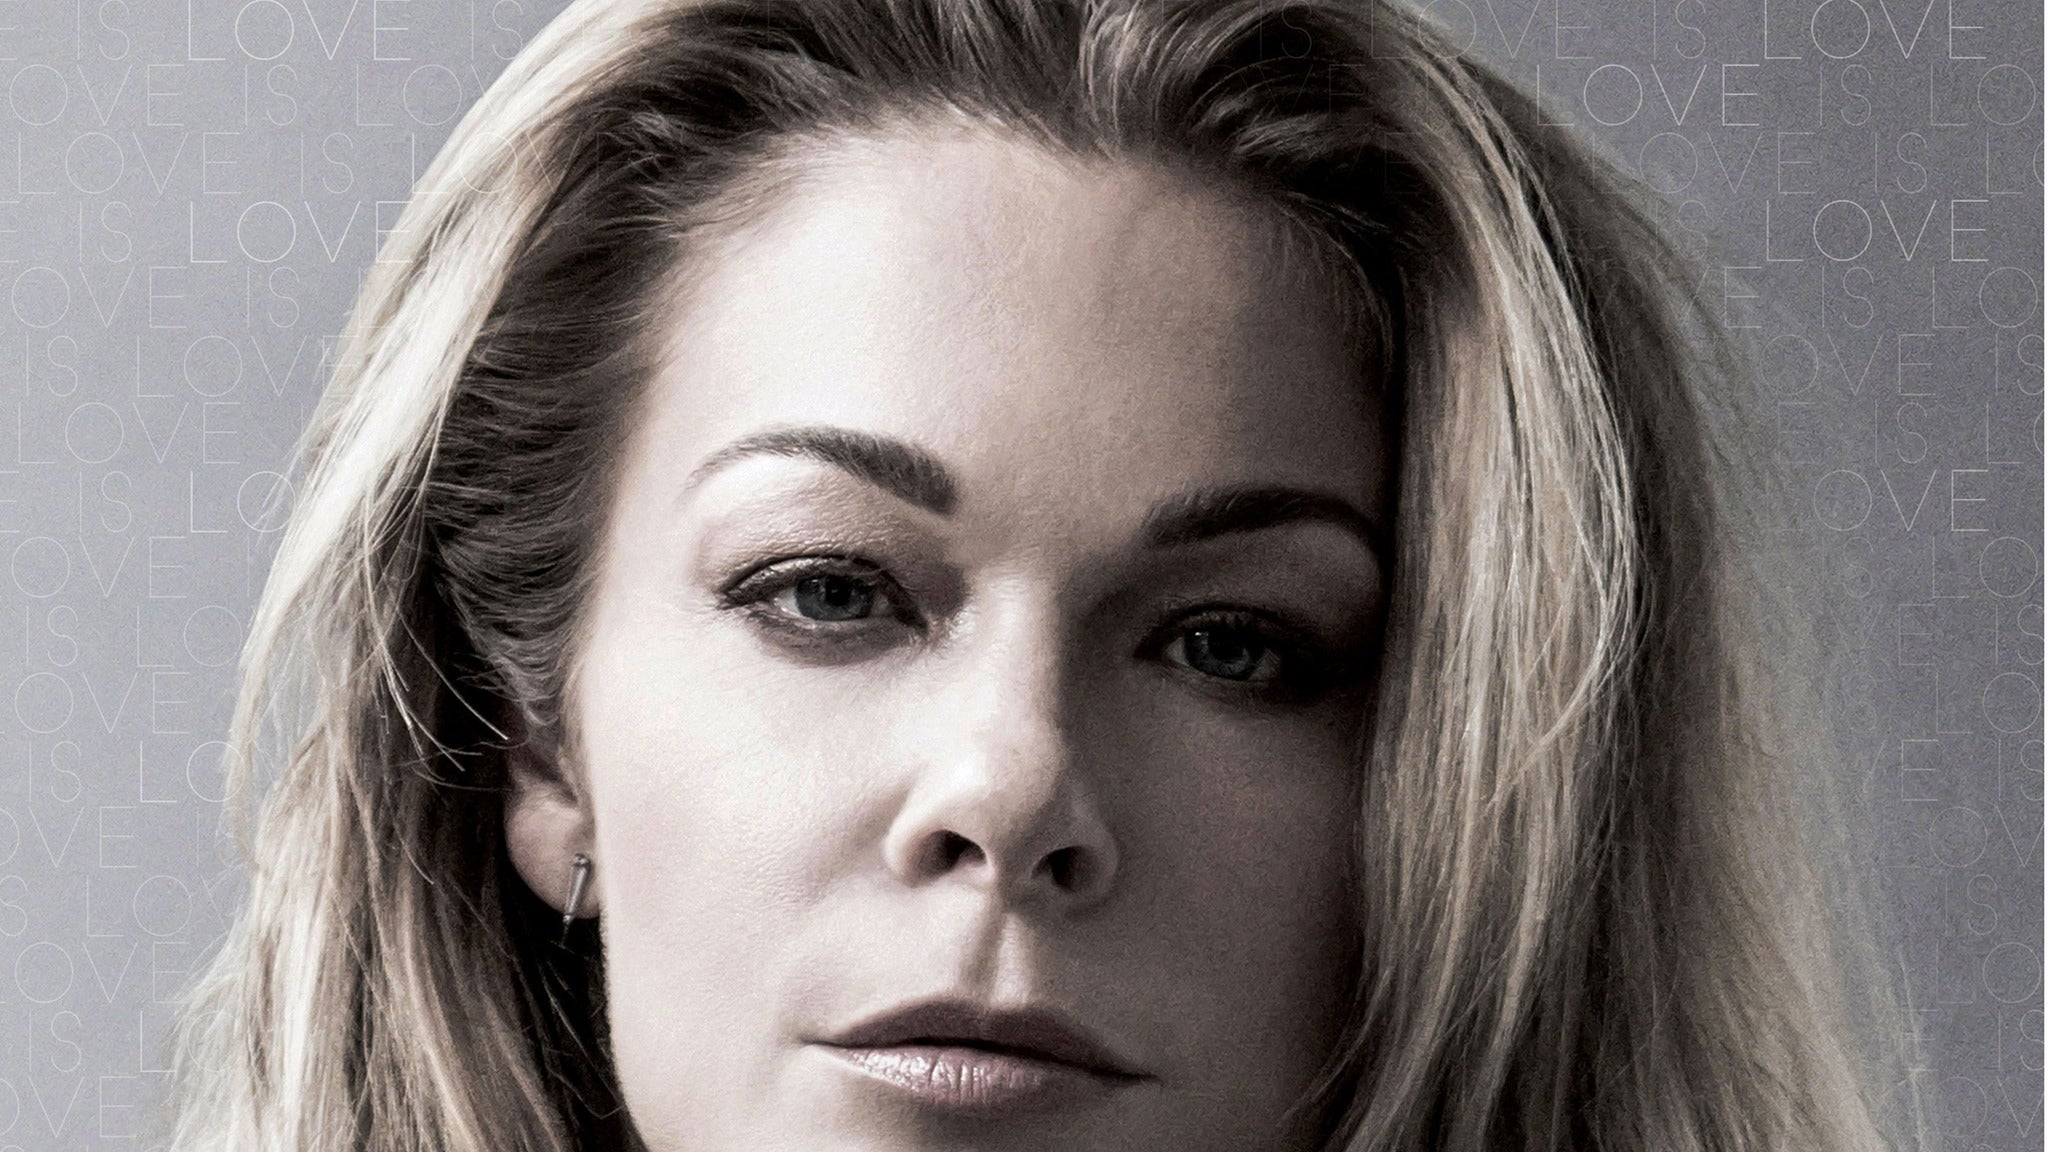 LeAnn Rimes at Chandler Center for the Arts